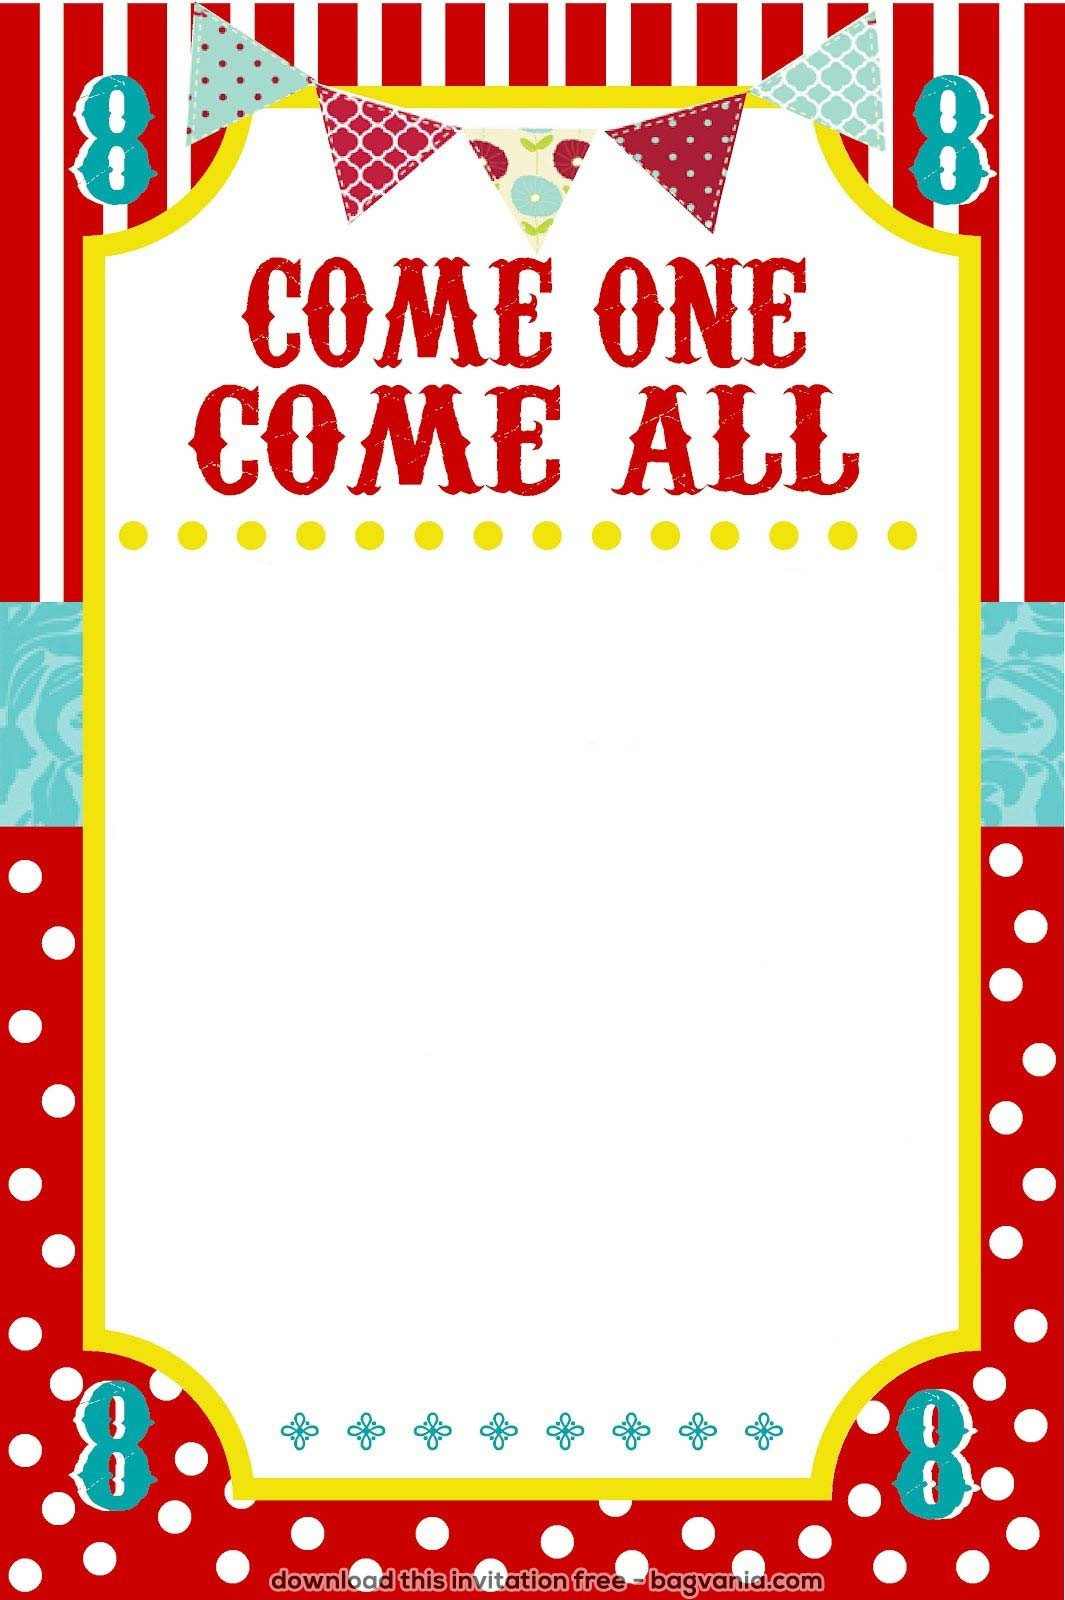 Carnival Ticket Invitation Template Free Free Carnival Birthday Invitations – Free Printable